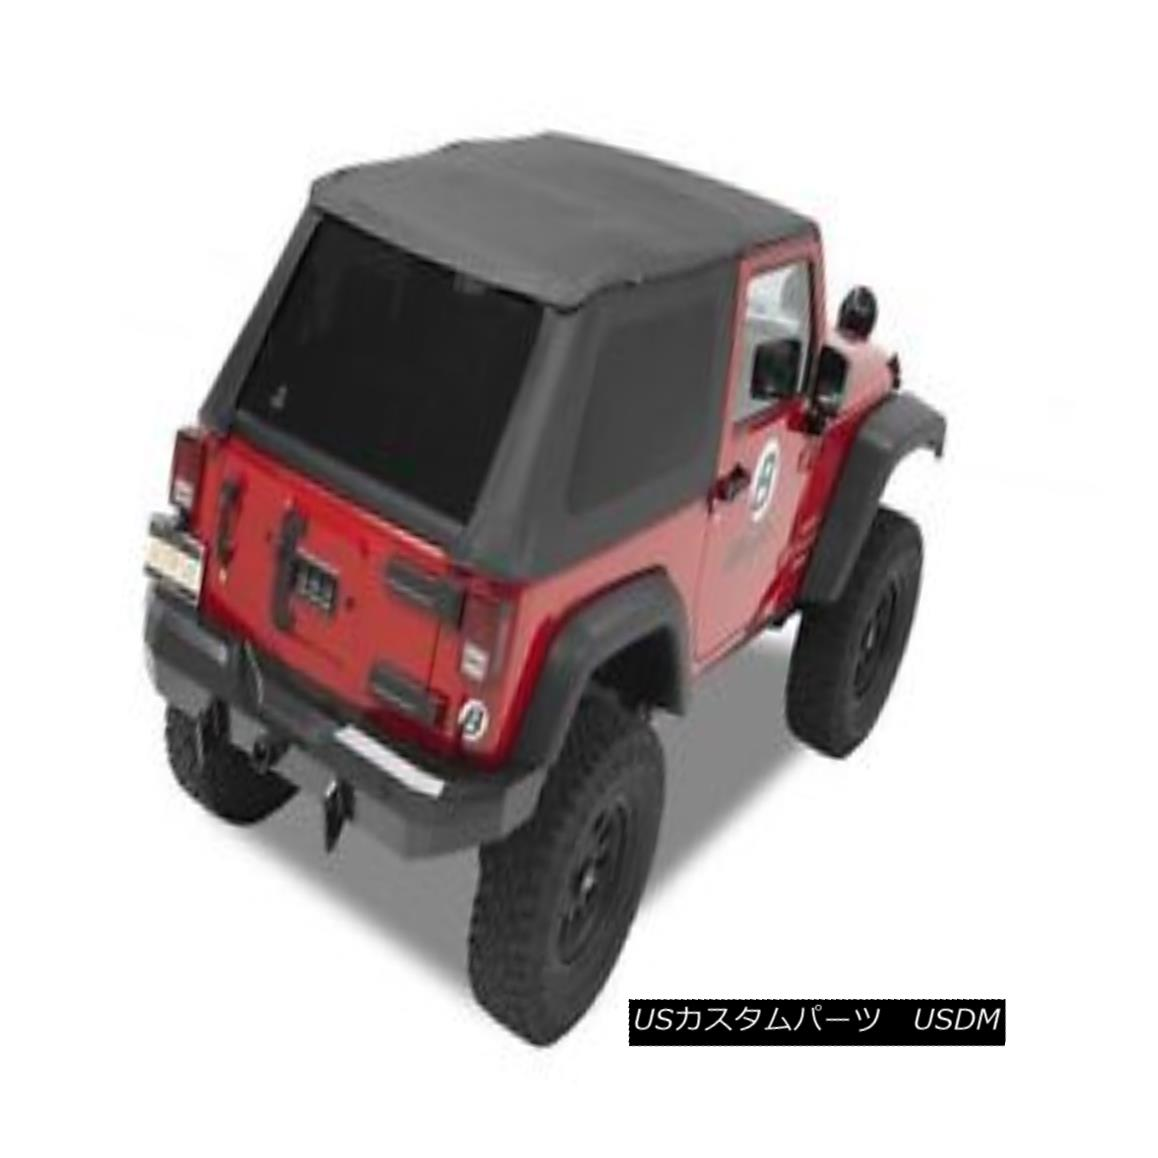 幌・ソフトトップ Bestop Trektop NX (No Doors) for 2007-2017 Jeep Wrangler JK 2 Door Black Diamond Topop Trektop NX(No Doors)2007-2017ジープ・ラングラーJK 2 Door Black Diamond